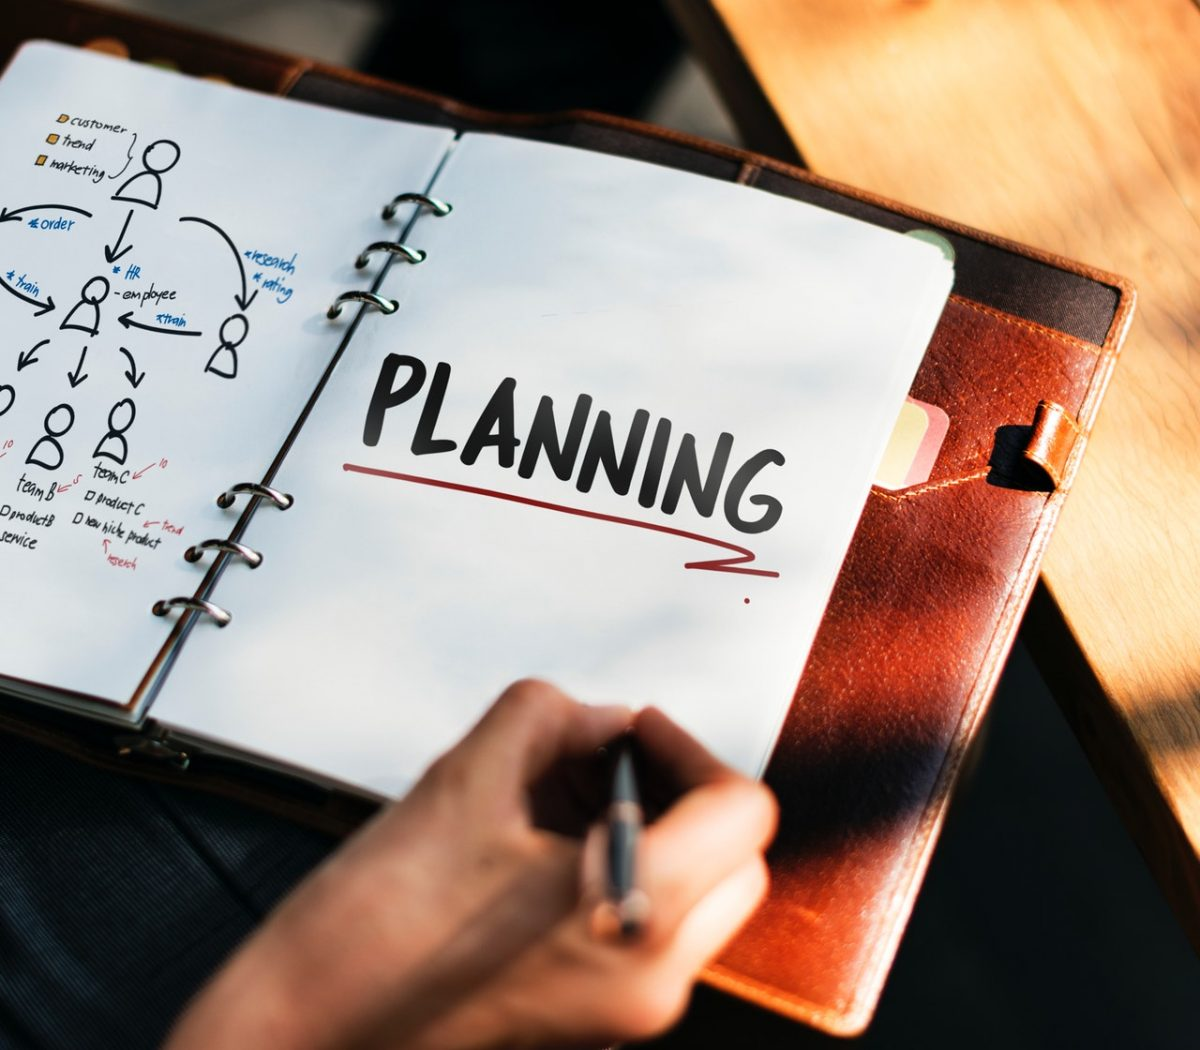 Planning business exit strategy works like a safety net for the entrepreneur